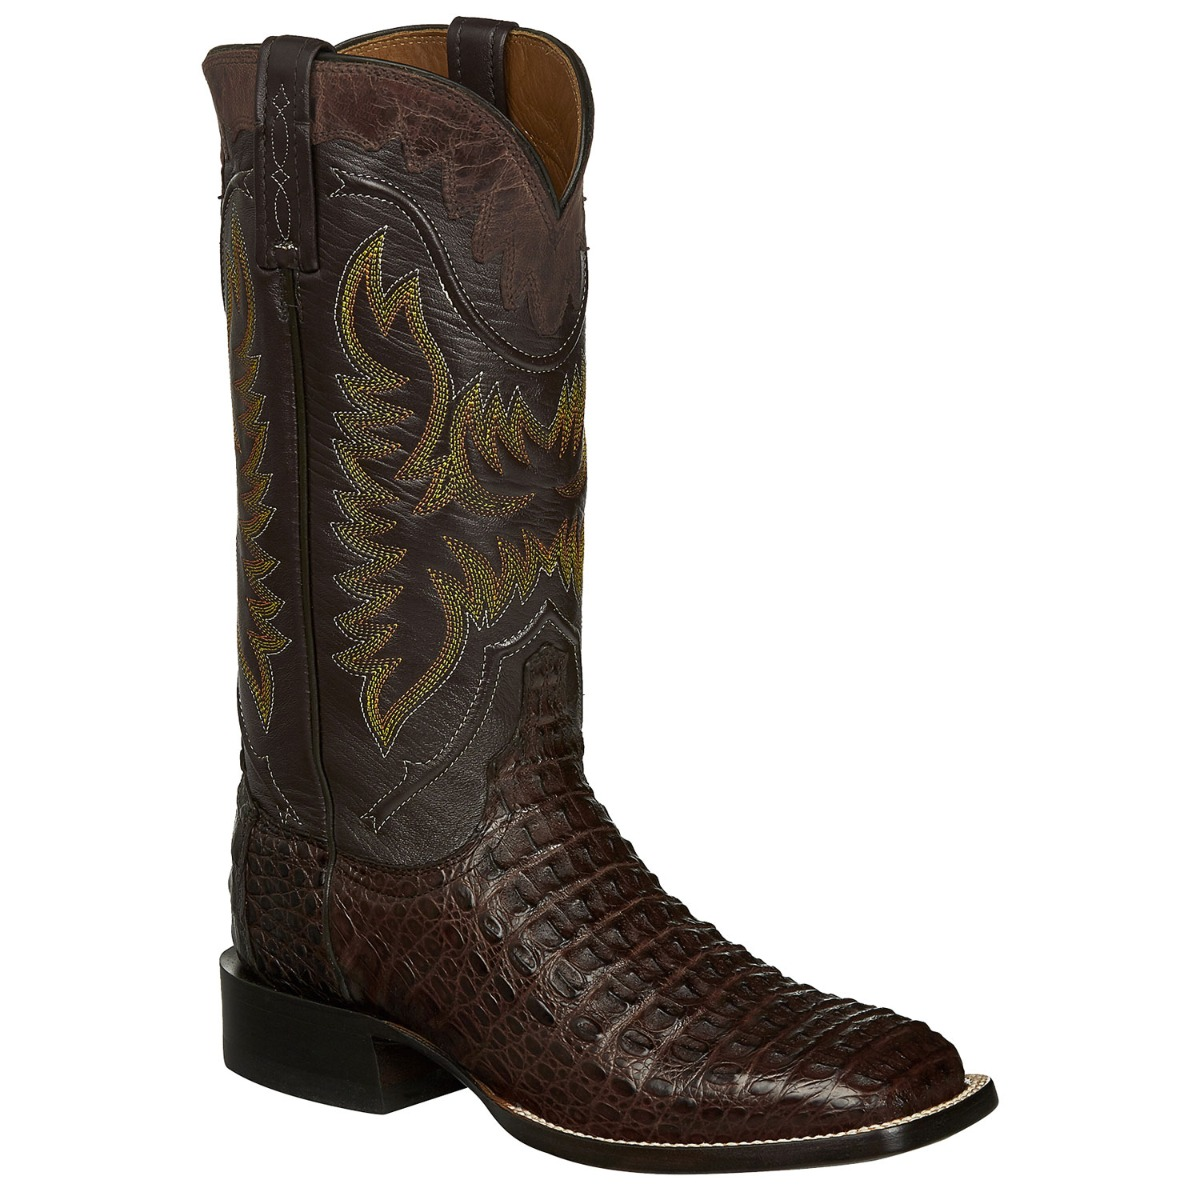 Lucchese Men's Barrel Brown Crocodile Caiman Hornback Square Toe Cowboy Boots